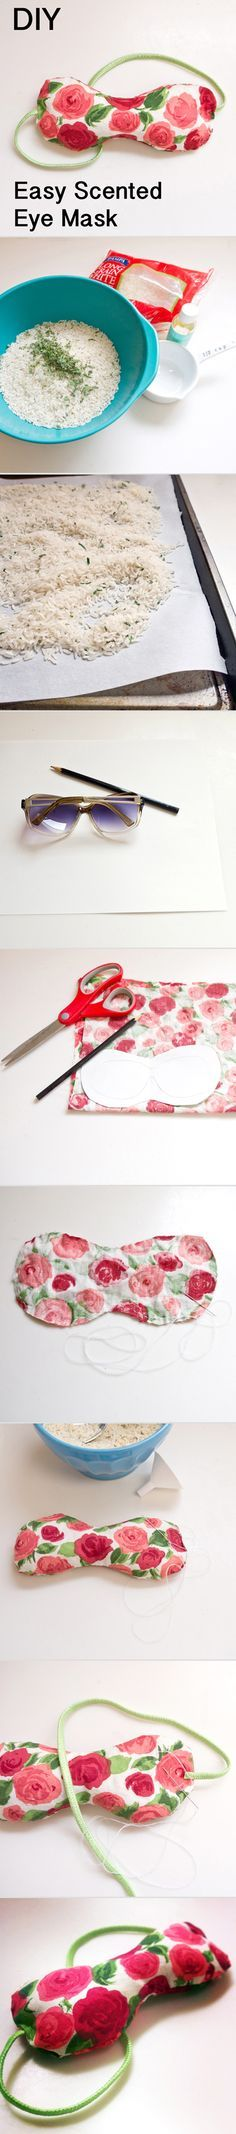 How to make this microwavable eyemask that's infused with herbs and relaxing essential oils.